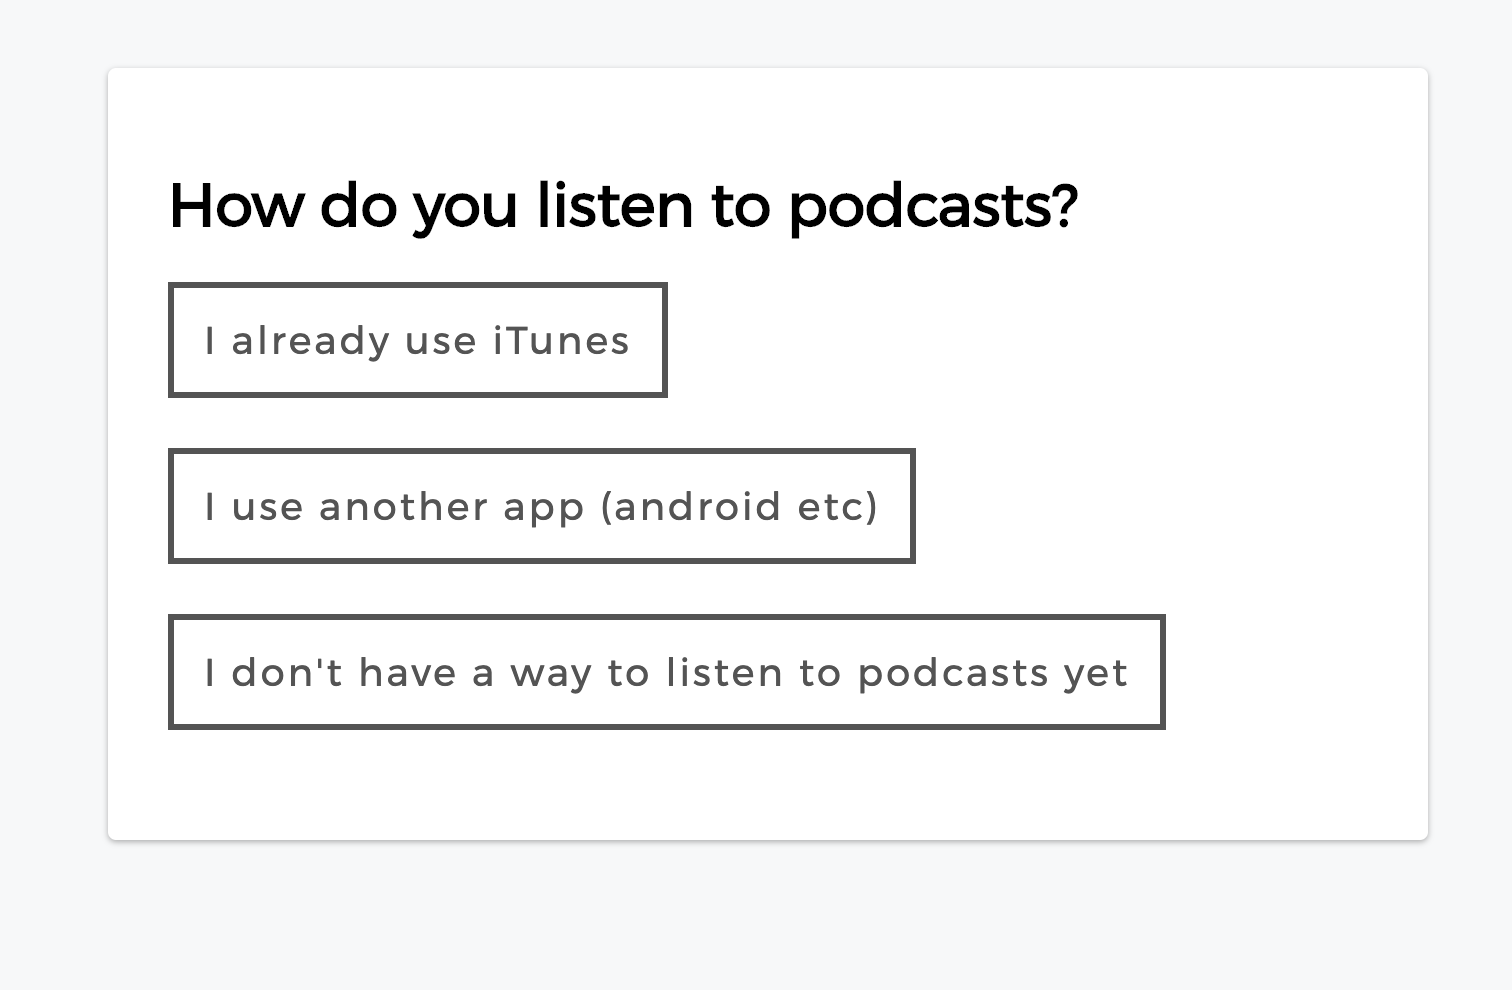 New podcast subscribe options